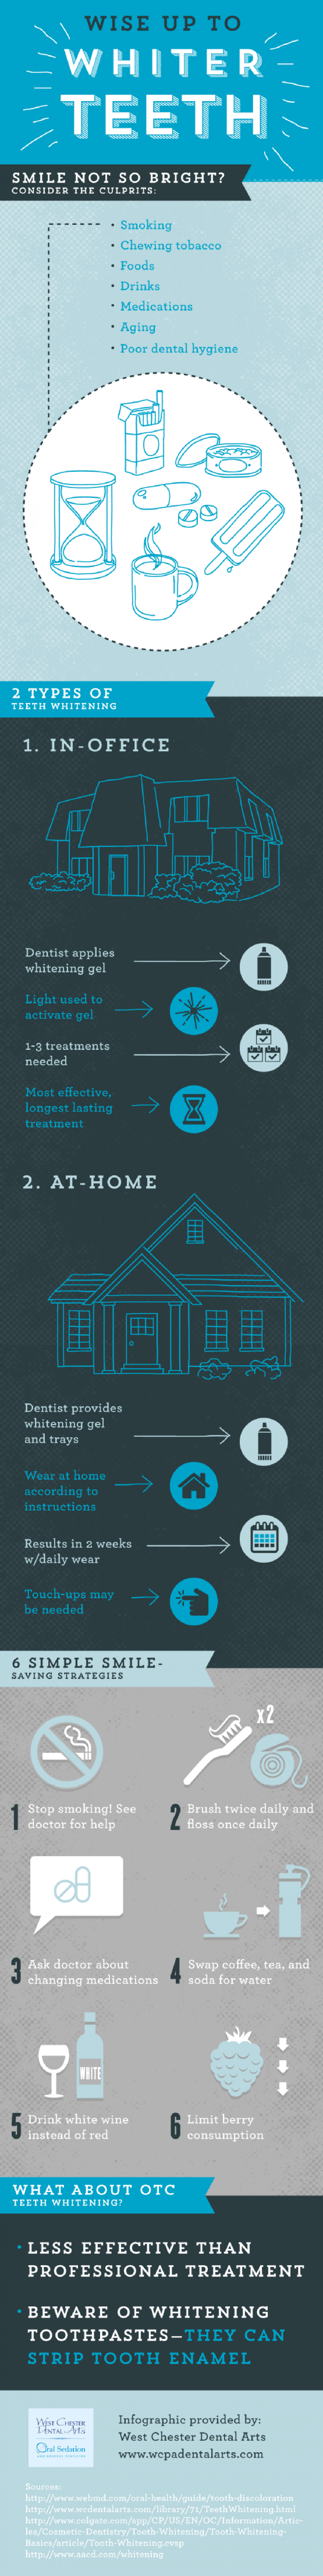 Wise Up to Whiter Teeth  Infographic